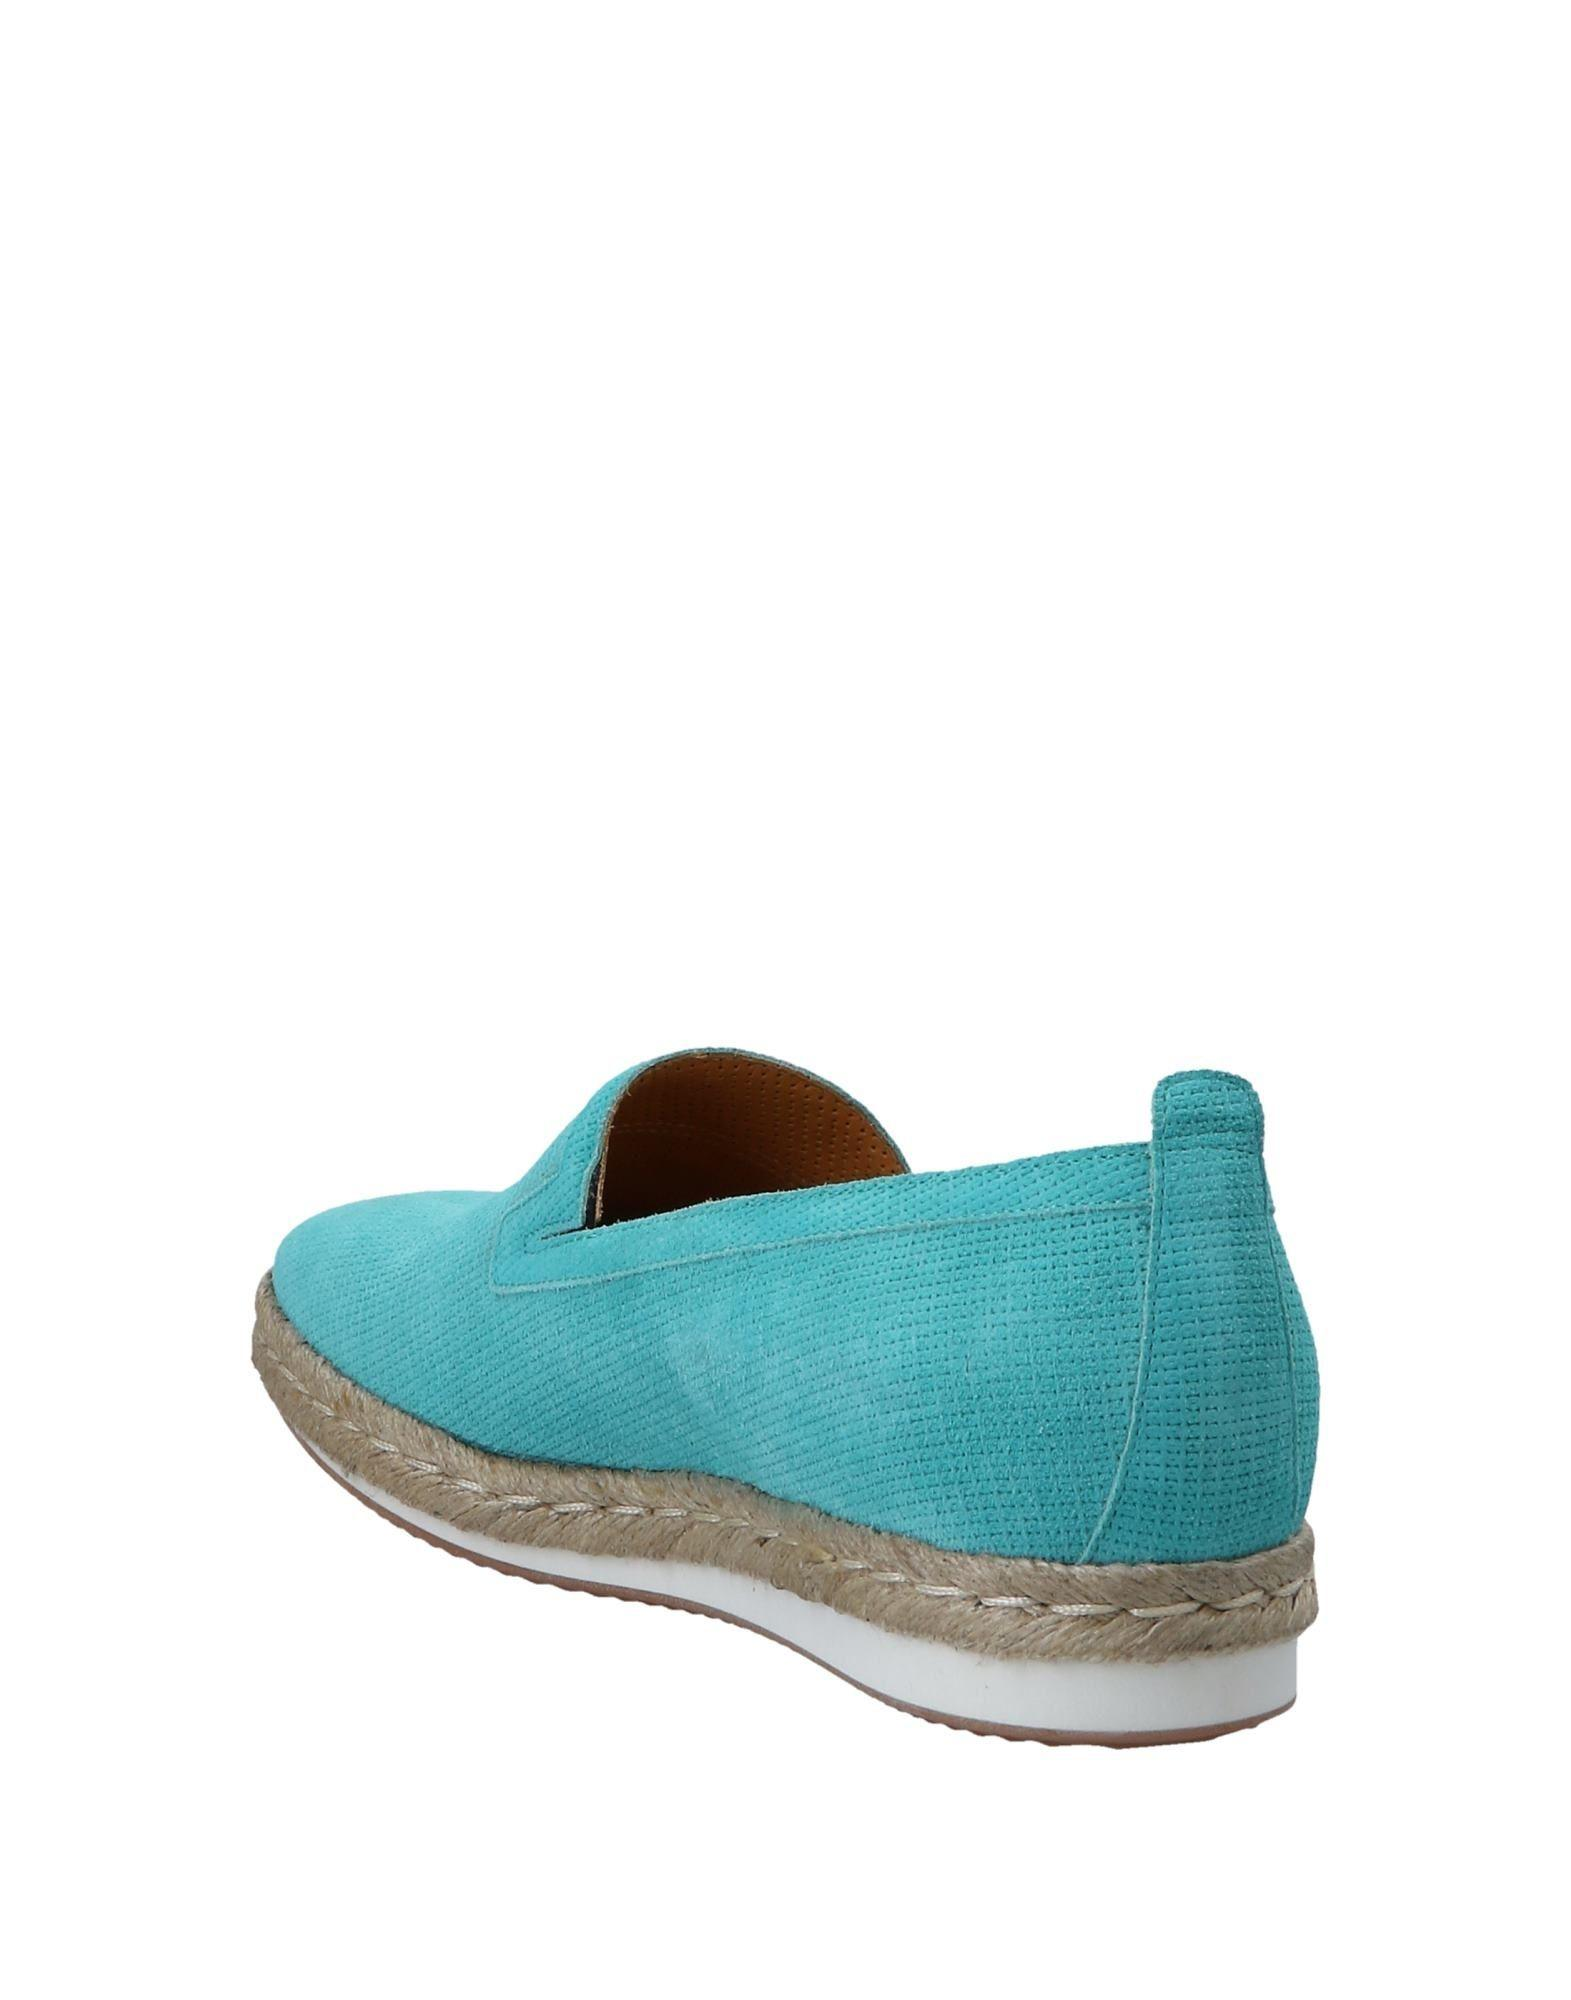 A.Testoni Suede Espadrilles in Turquoise (Blue) for Men